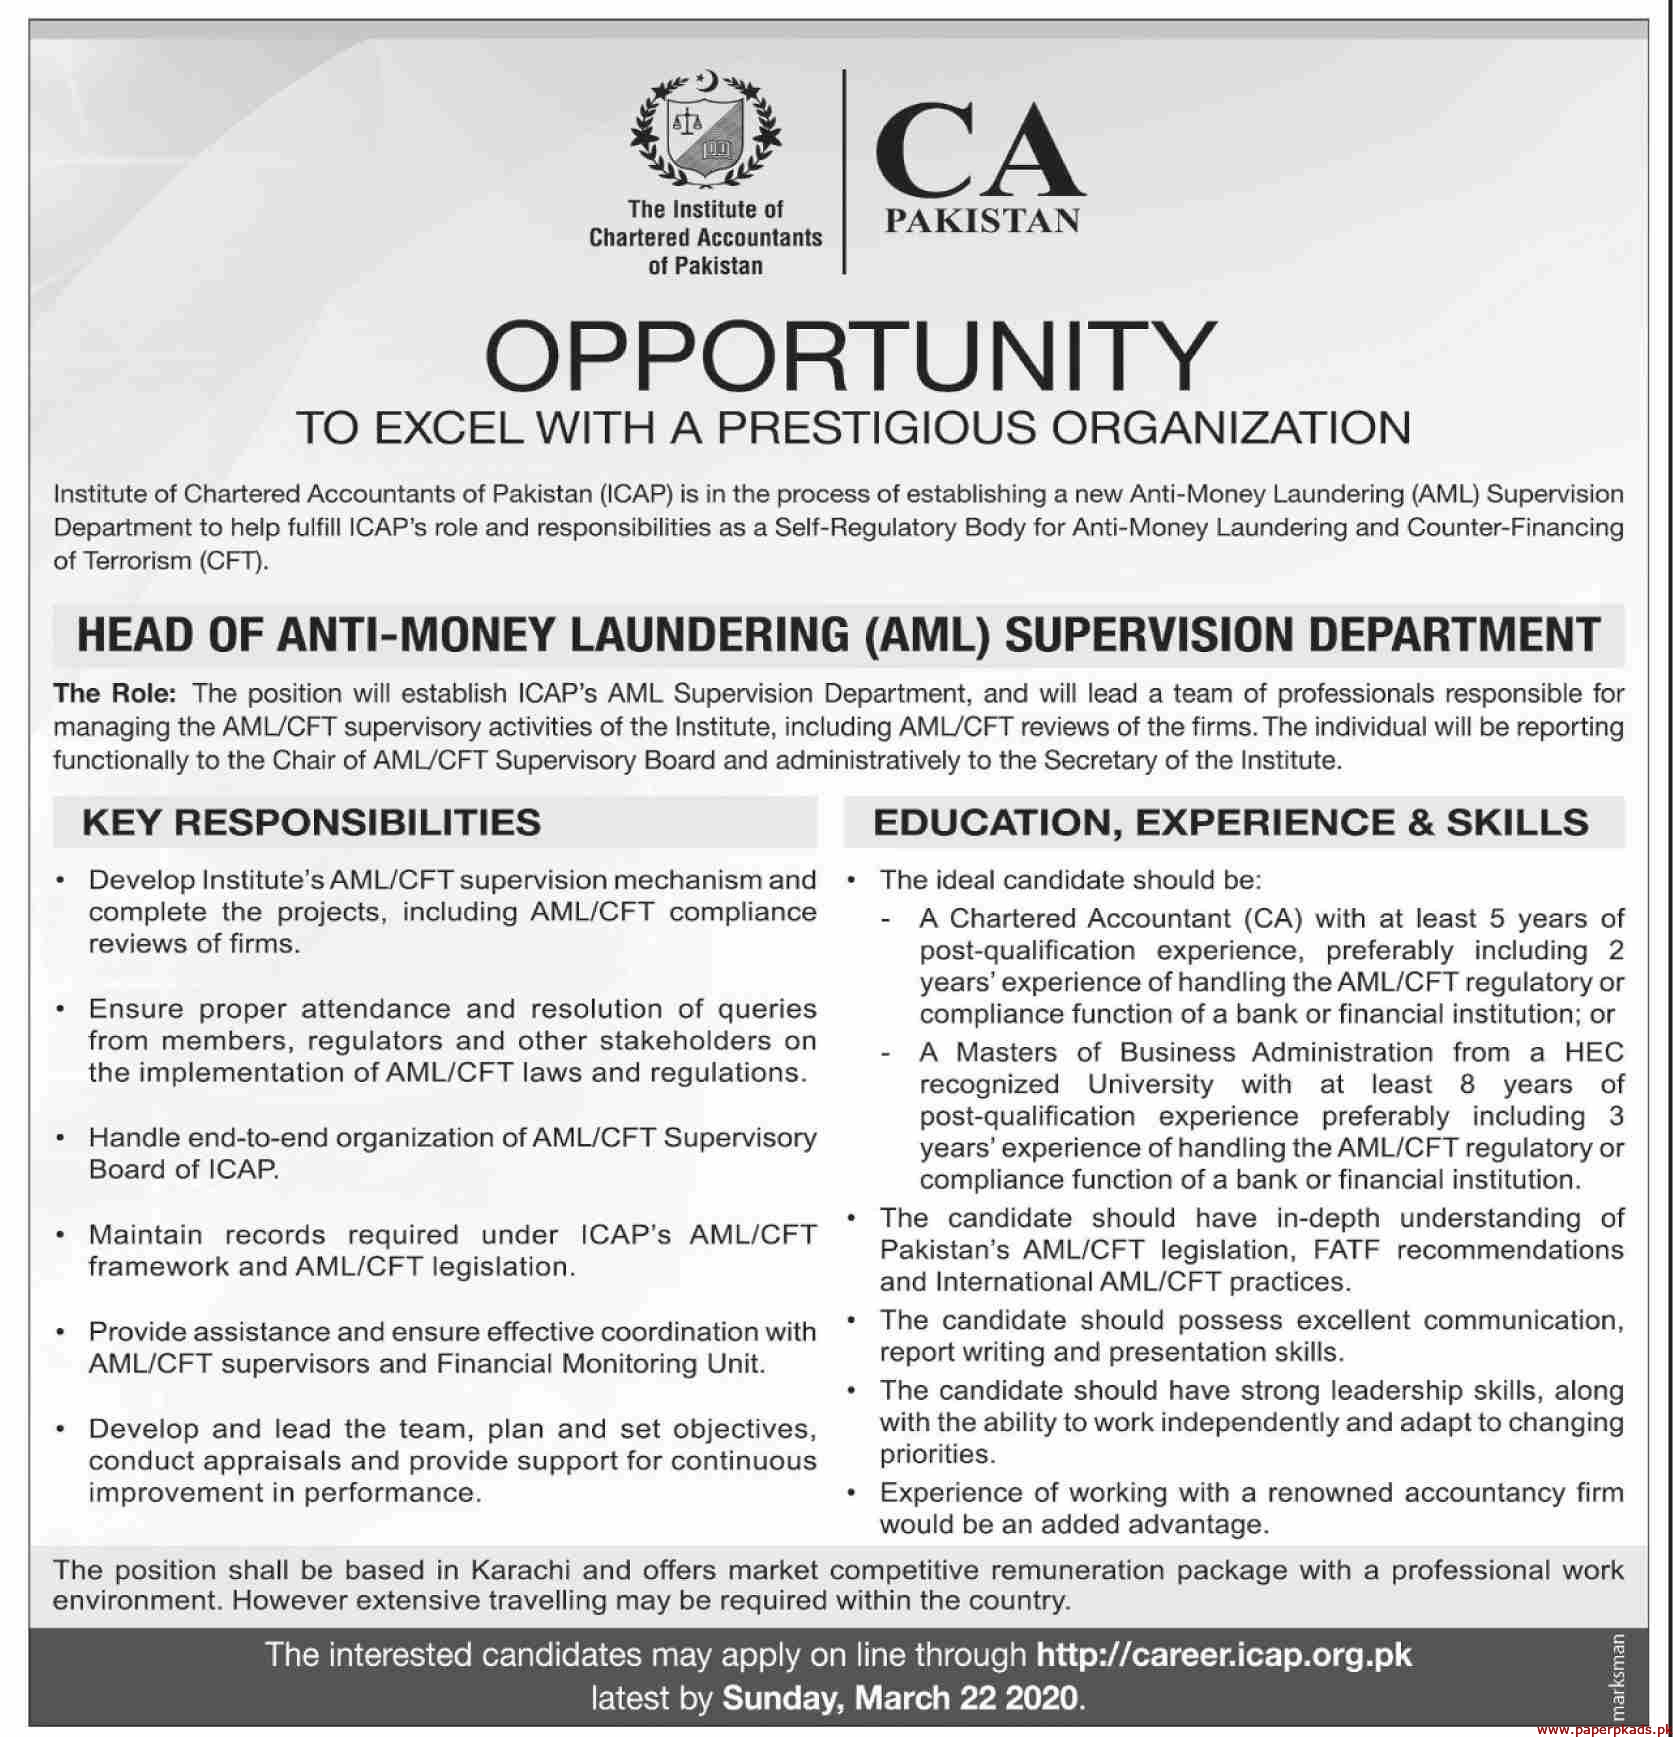 Institute of Chartered Accountants of Pakistan ICAP Jobs 2020 Latest